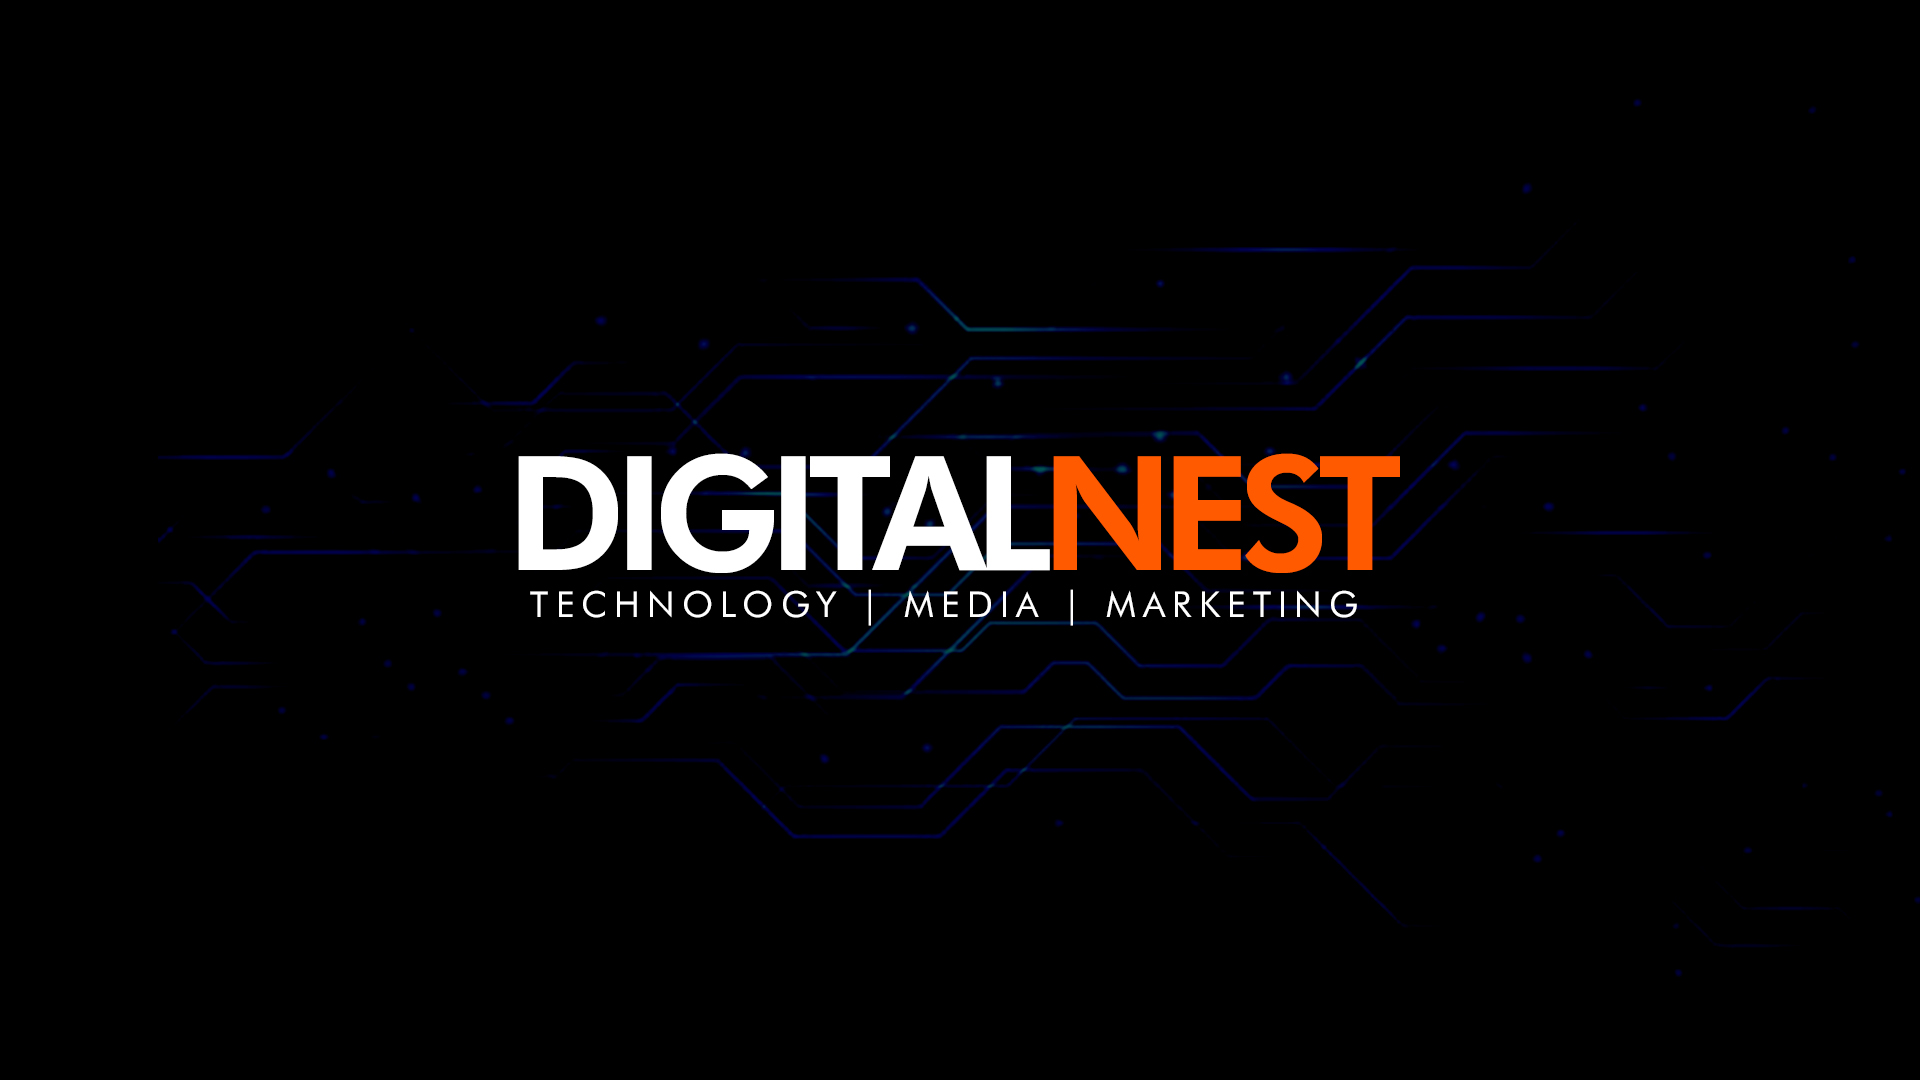 Digital Nest Communications - Full service Digital Marketing agency in Abuja